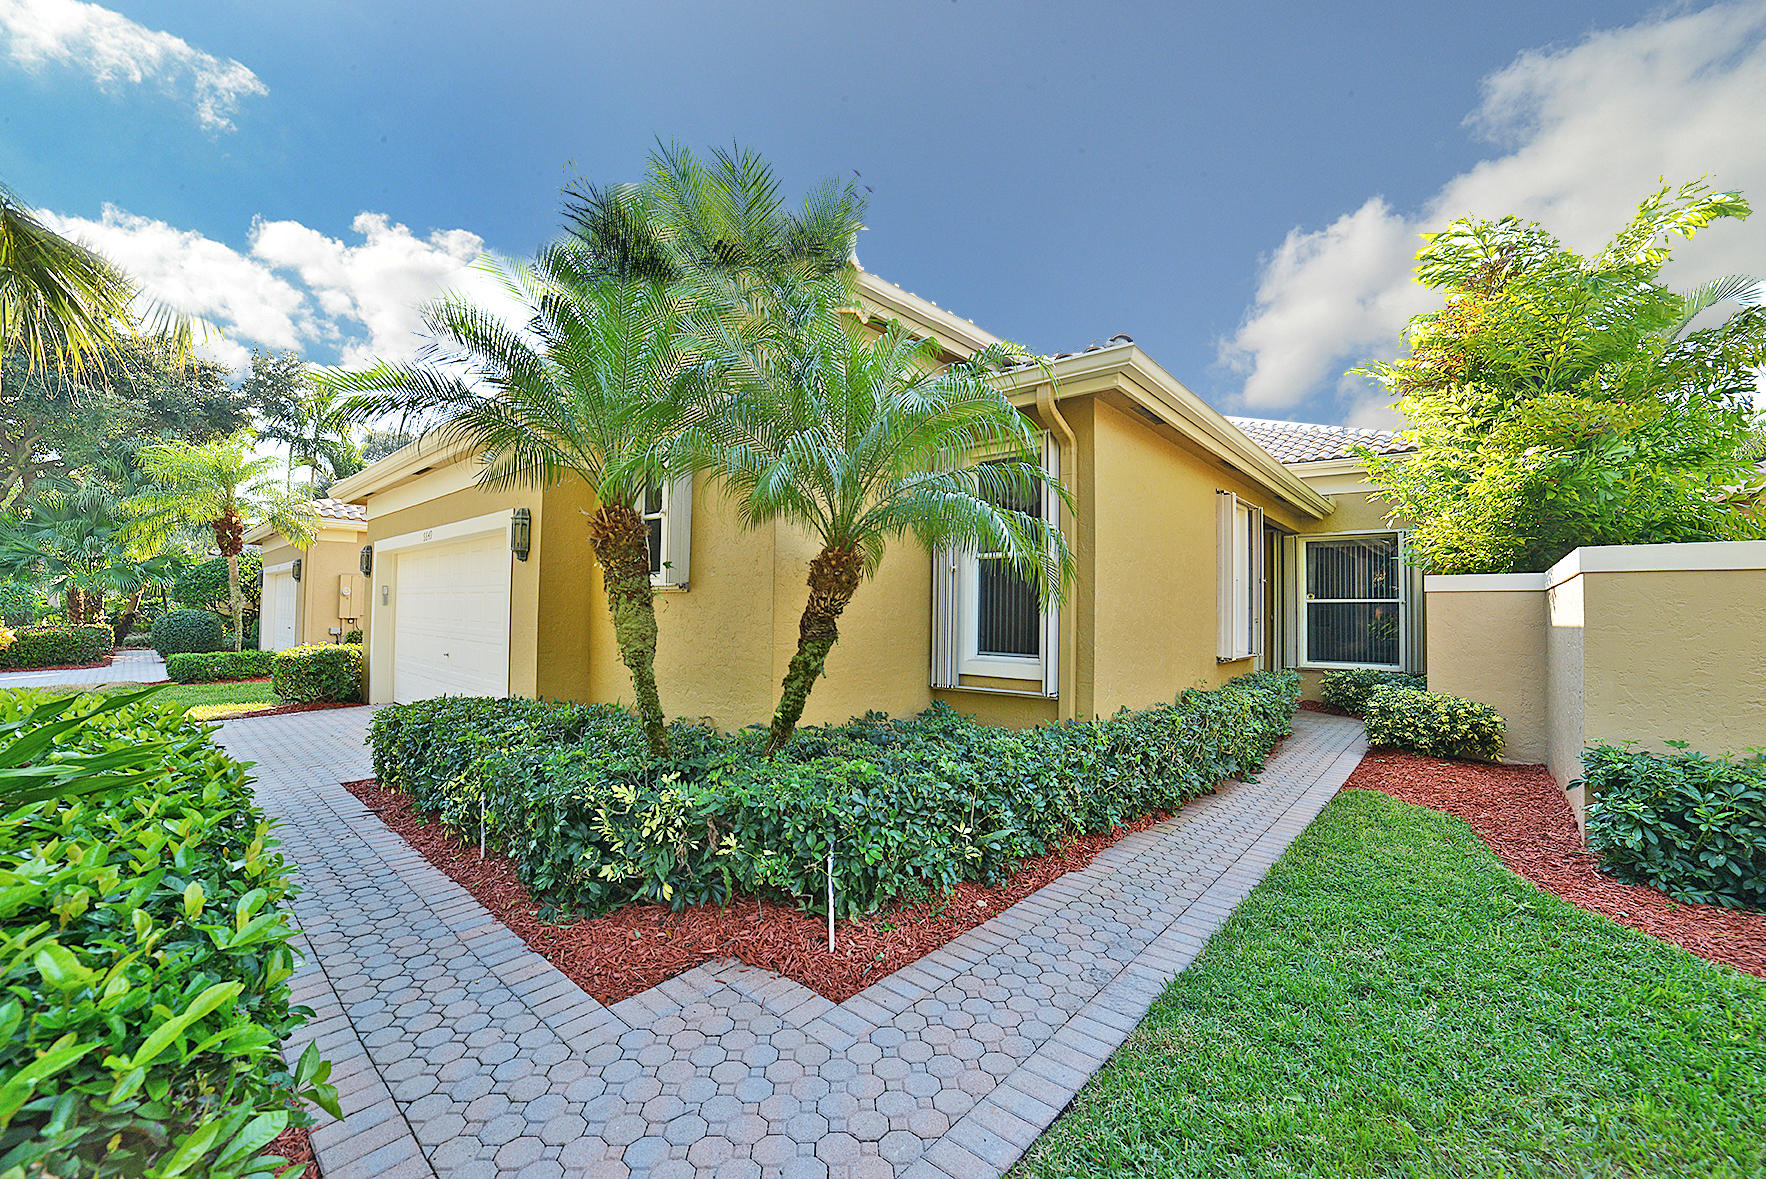 6649 NW 24TH TERRACE, BOCA RATON, FL 33496